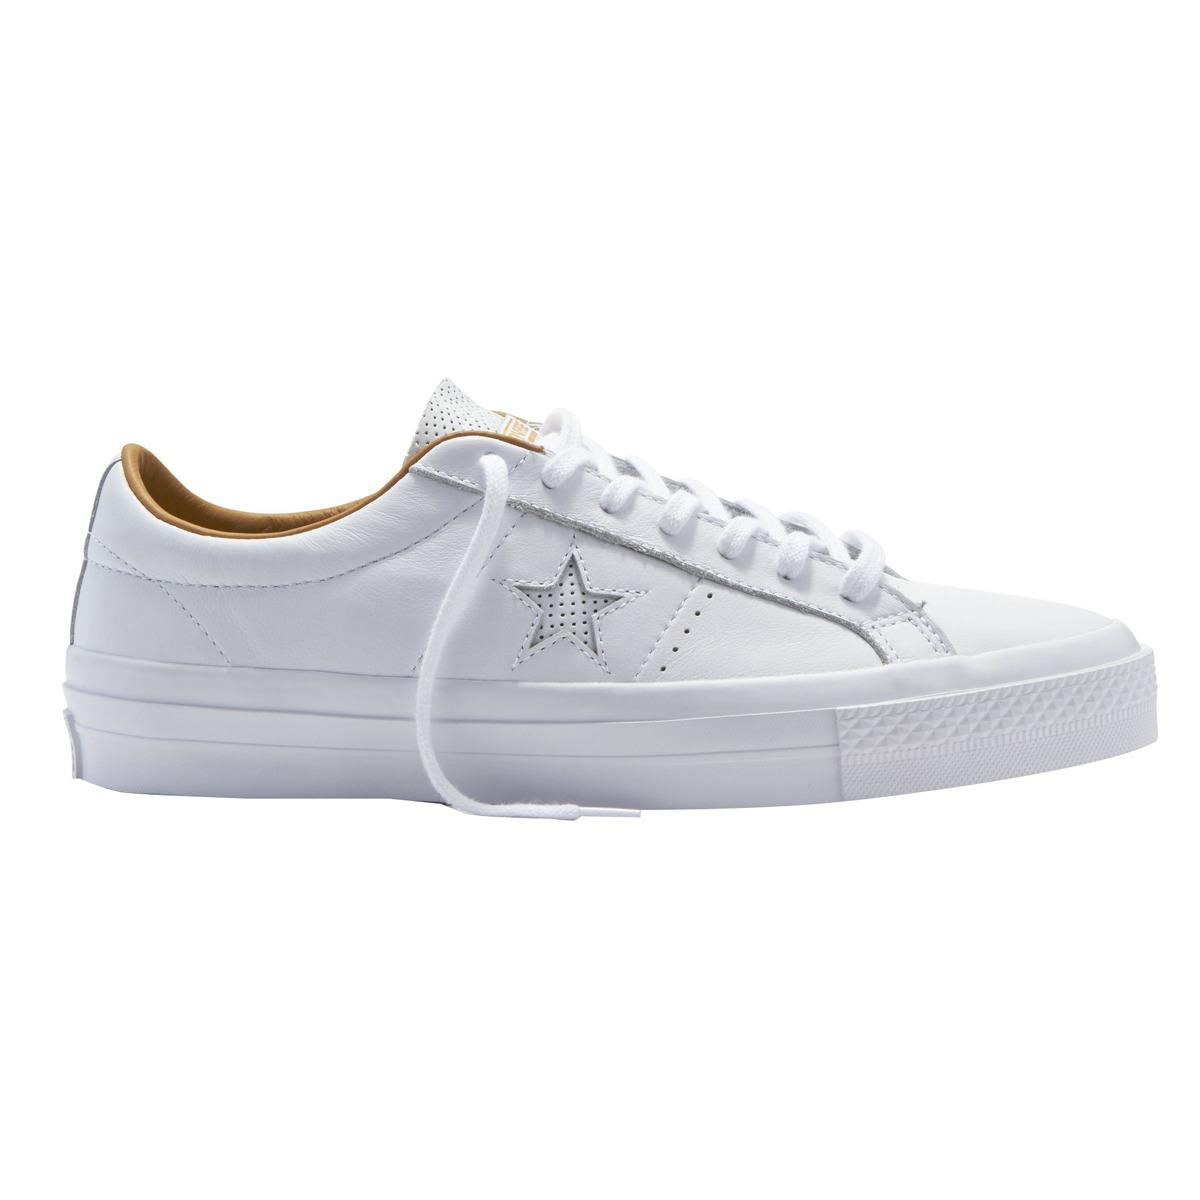 1fdc9e579529 Lyst - Converse One Star Leather Ox Unisex Casual Trainers in White